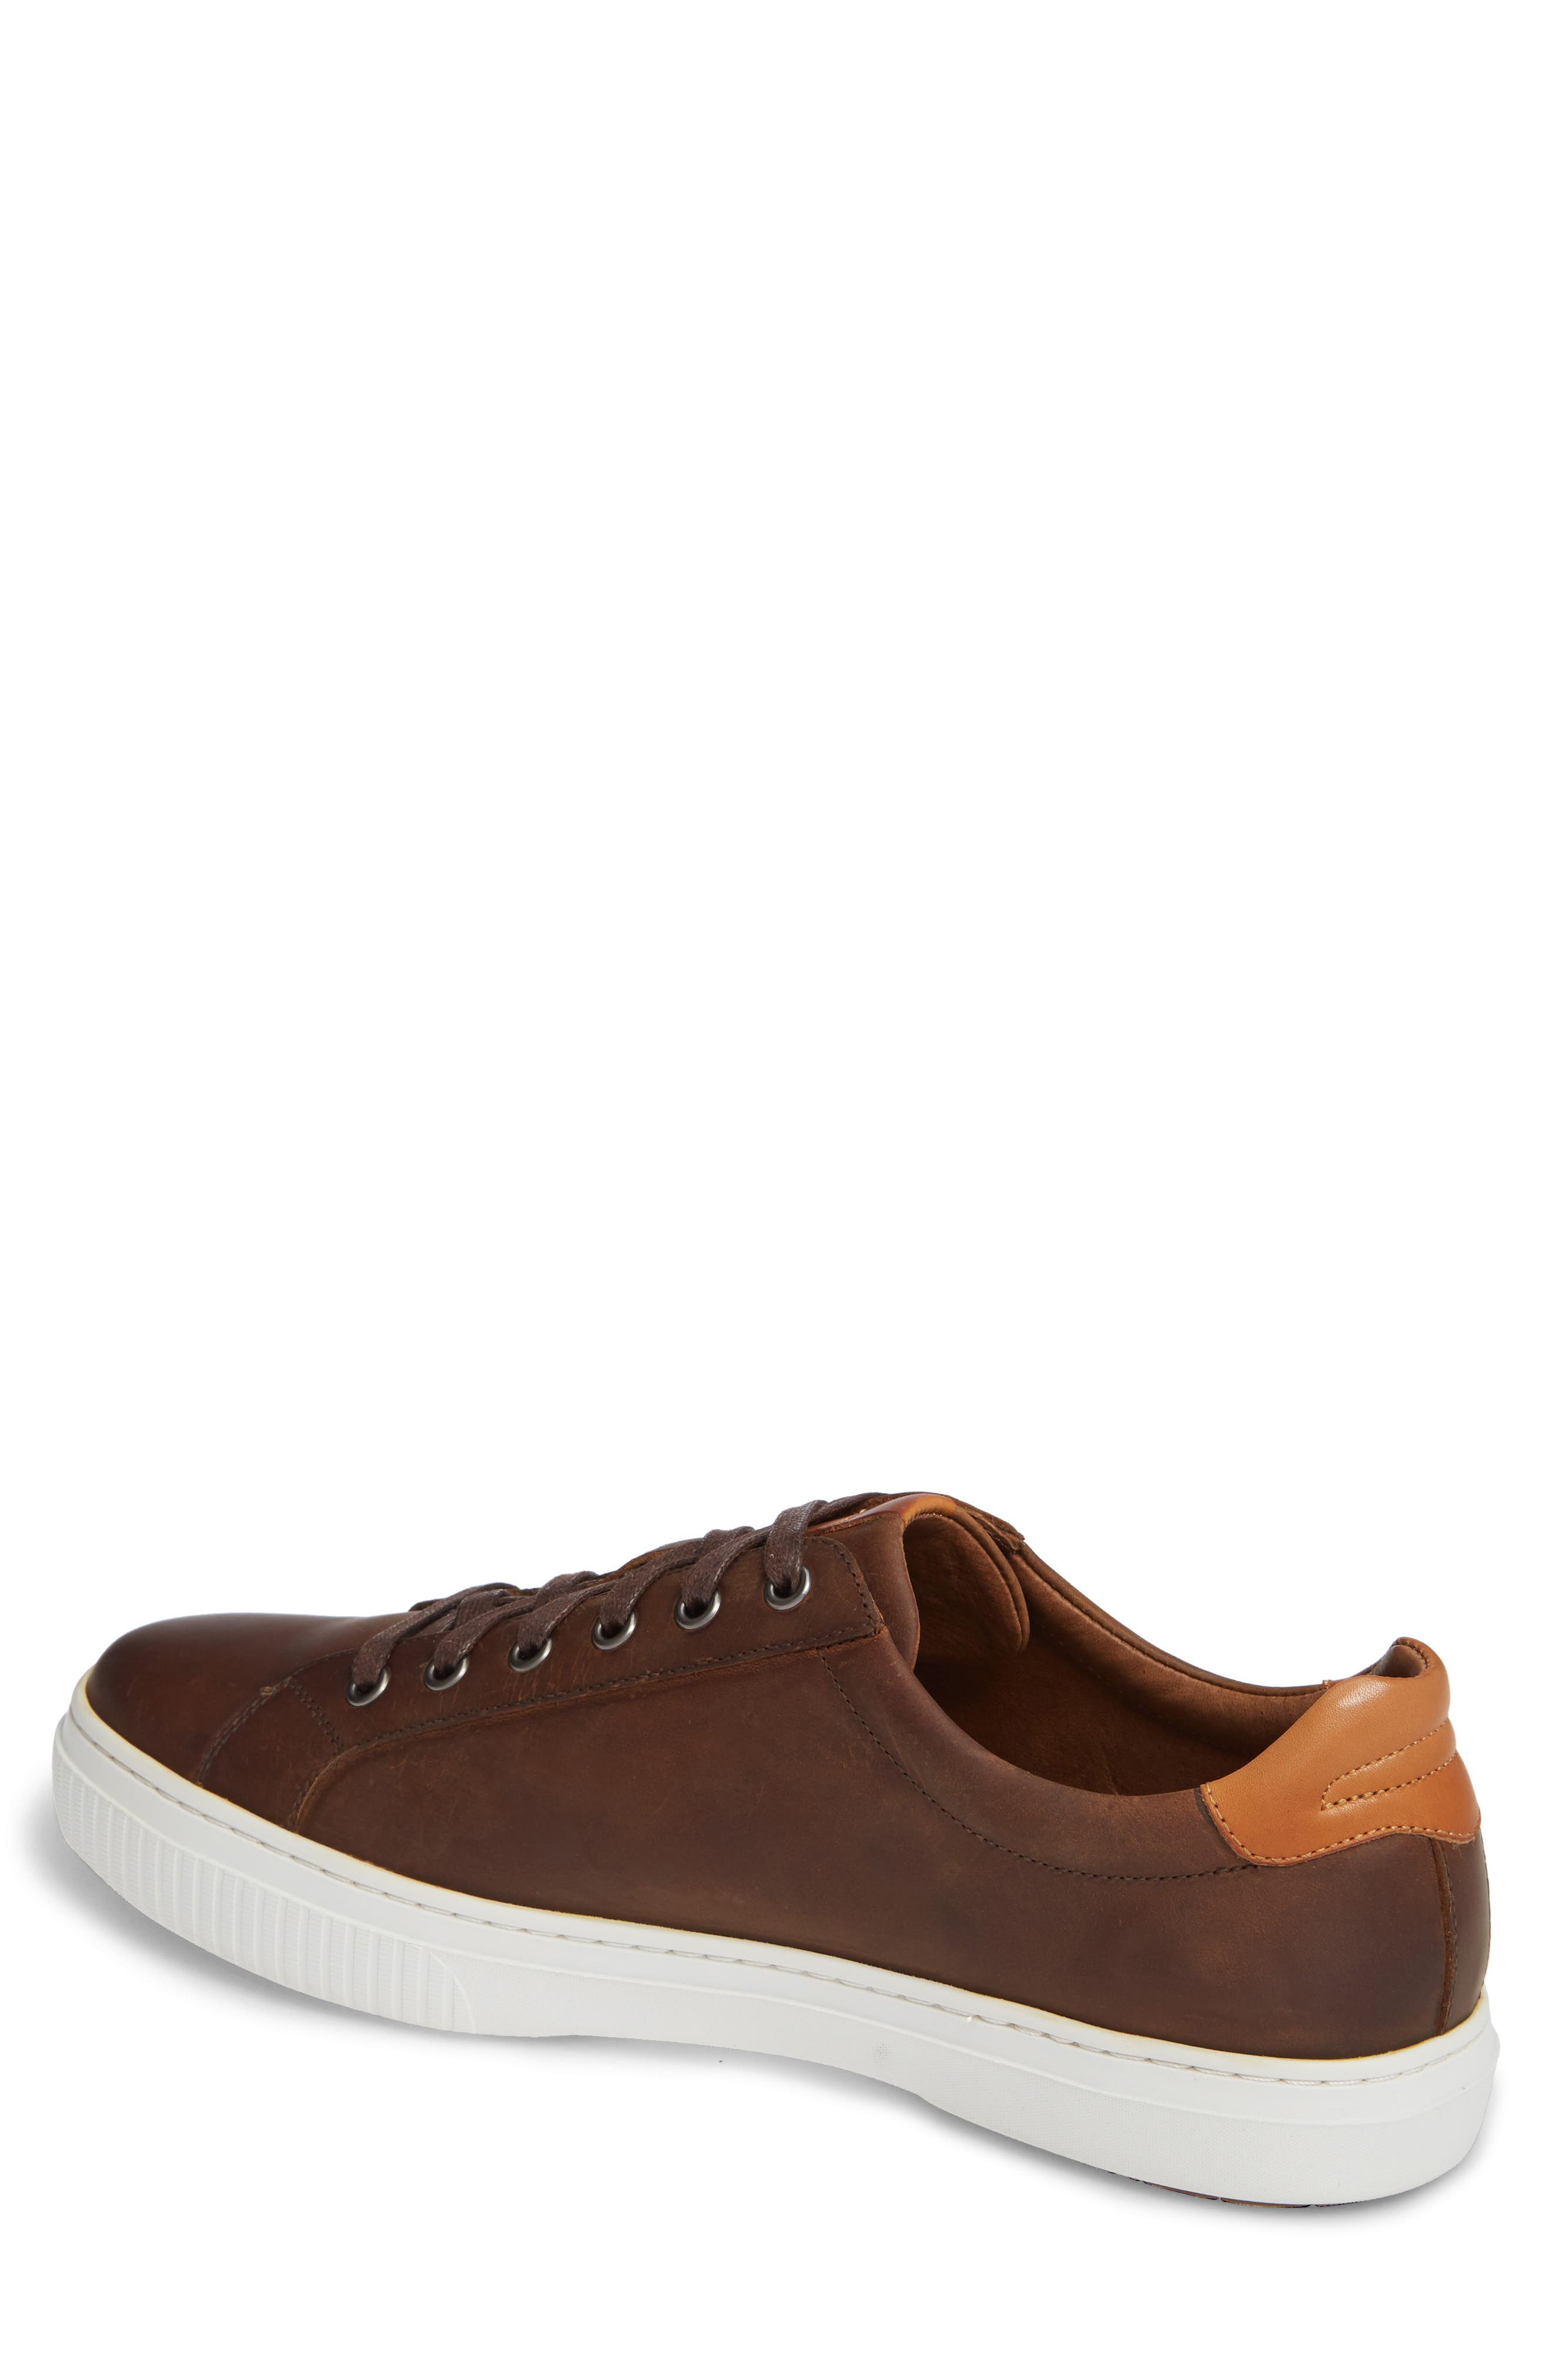 J&M 1850, Toliver Low Top Sneaker, Alternate thumbnail 2, color, TAN LEATHER